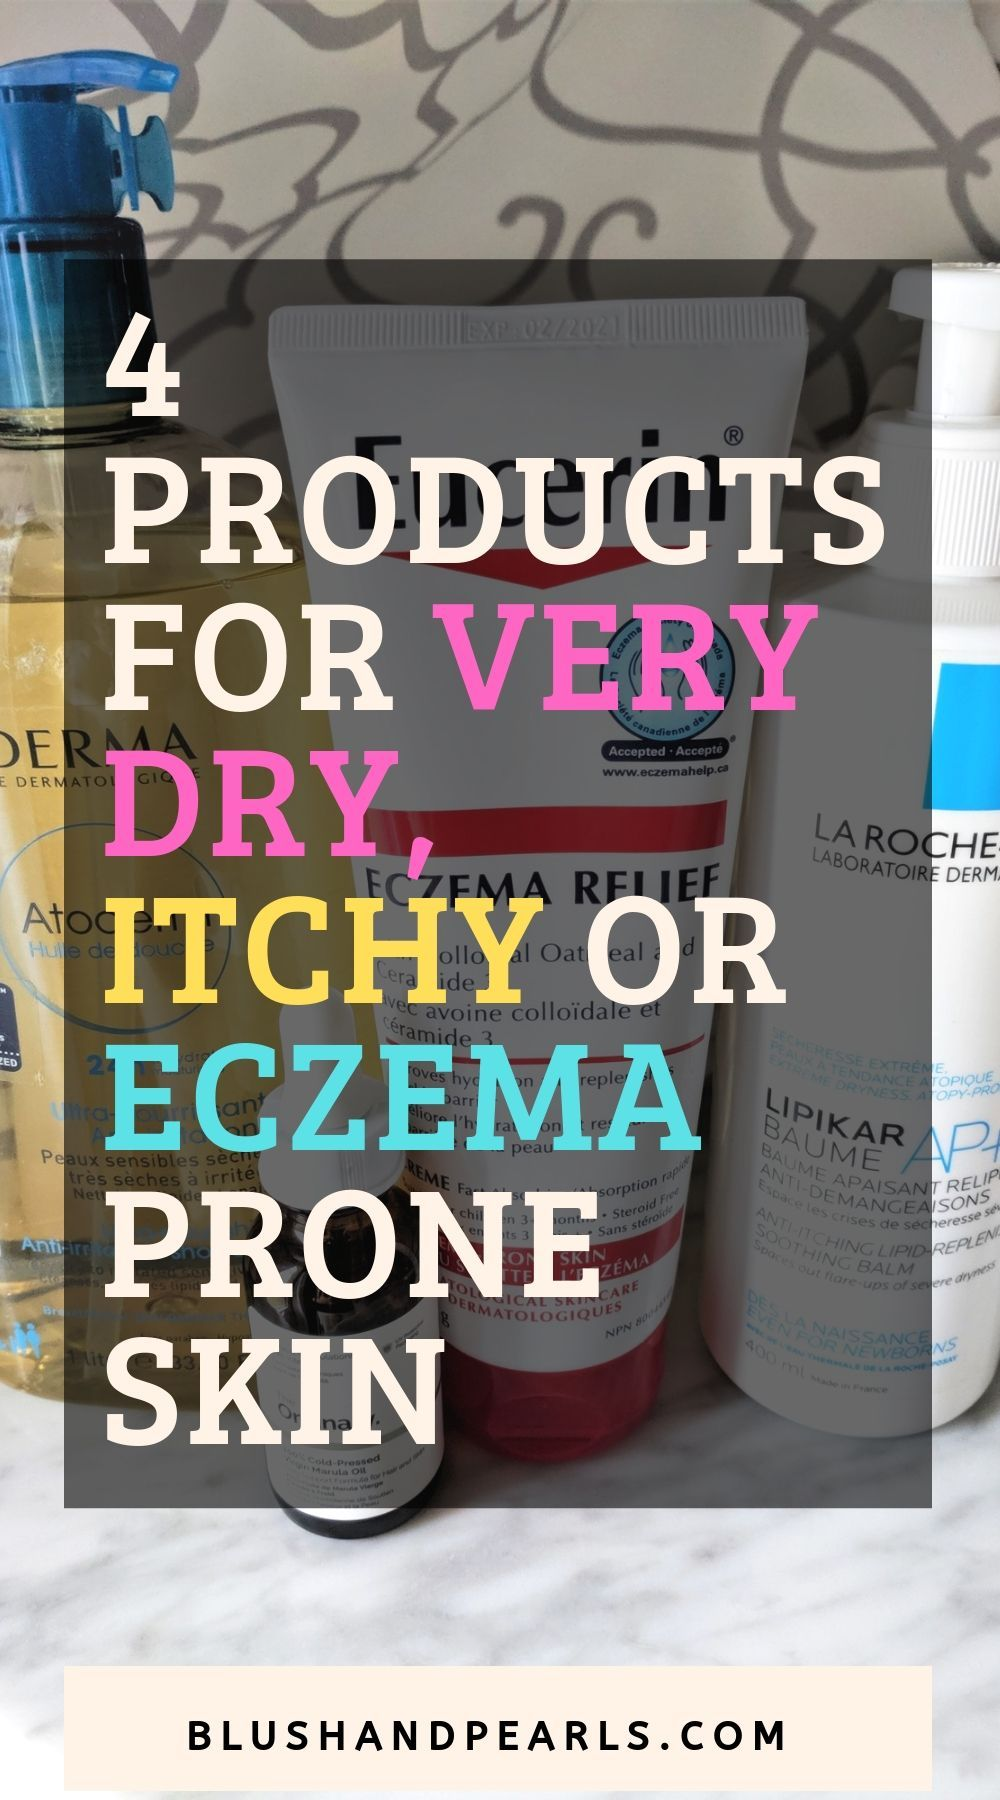 4 Products For Very Dry, Itchy or Eczema Prone Skin